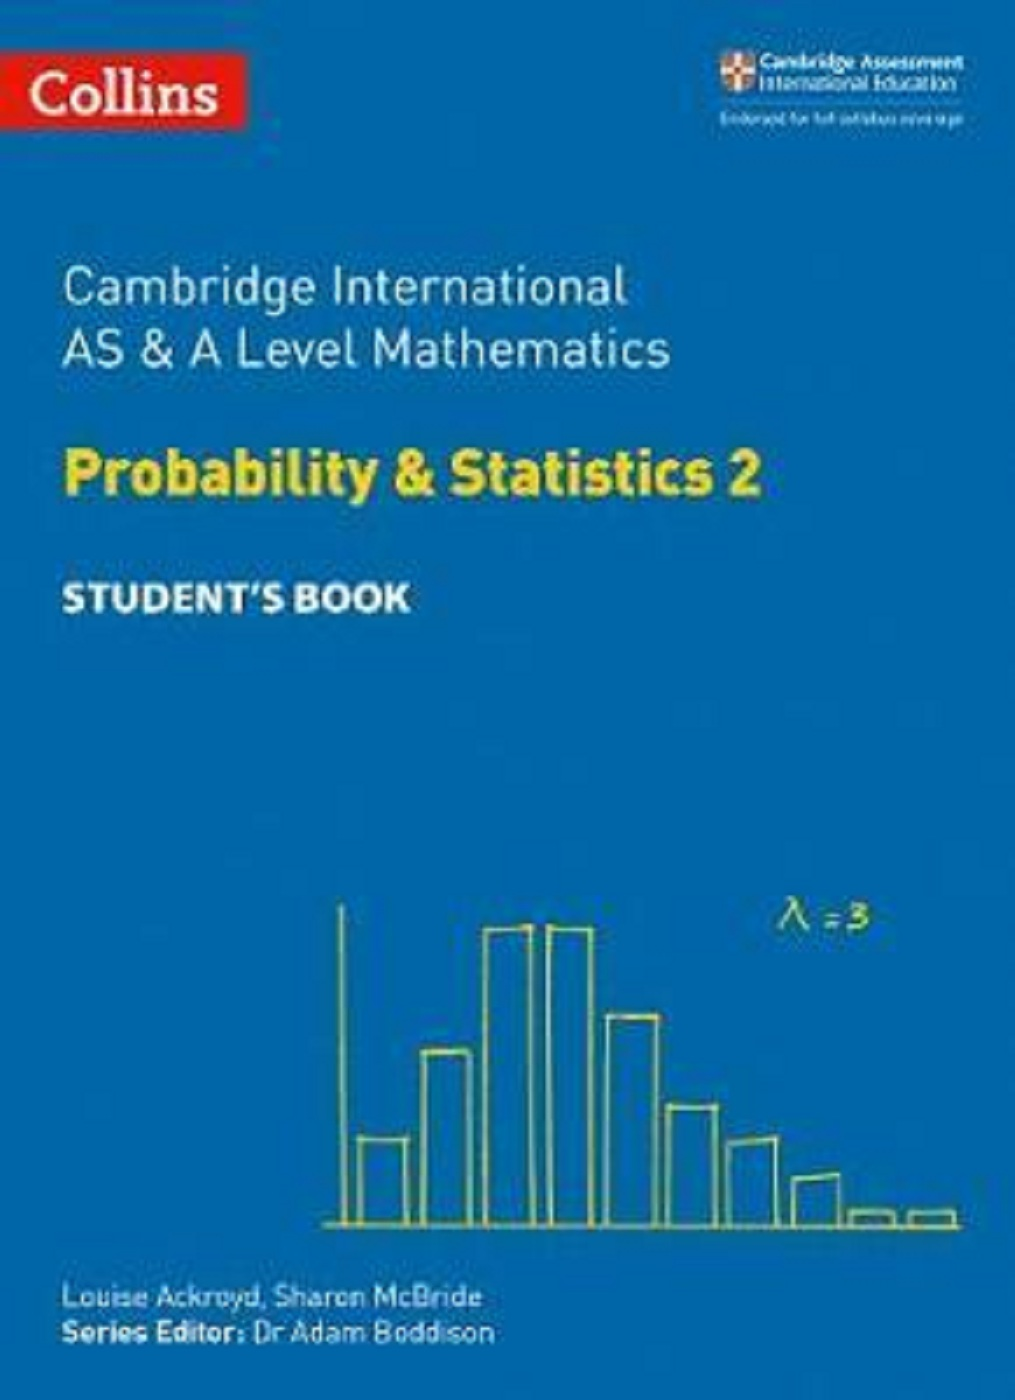 Collins Mathematics Probability & Statistics 2 As and A Level Student's Book